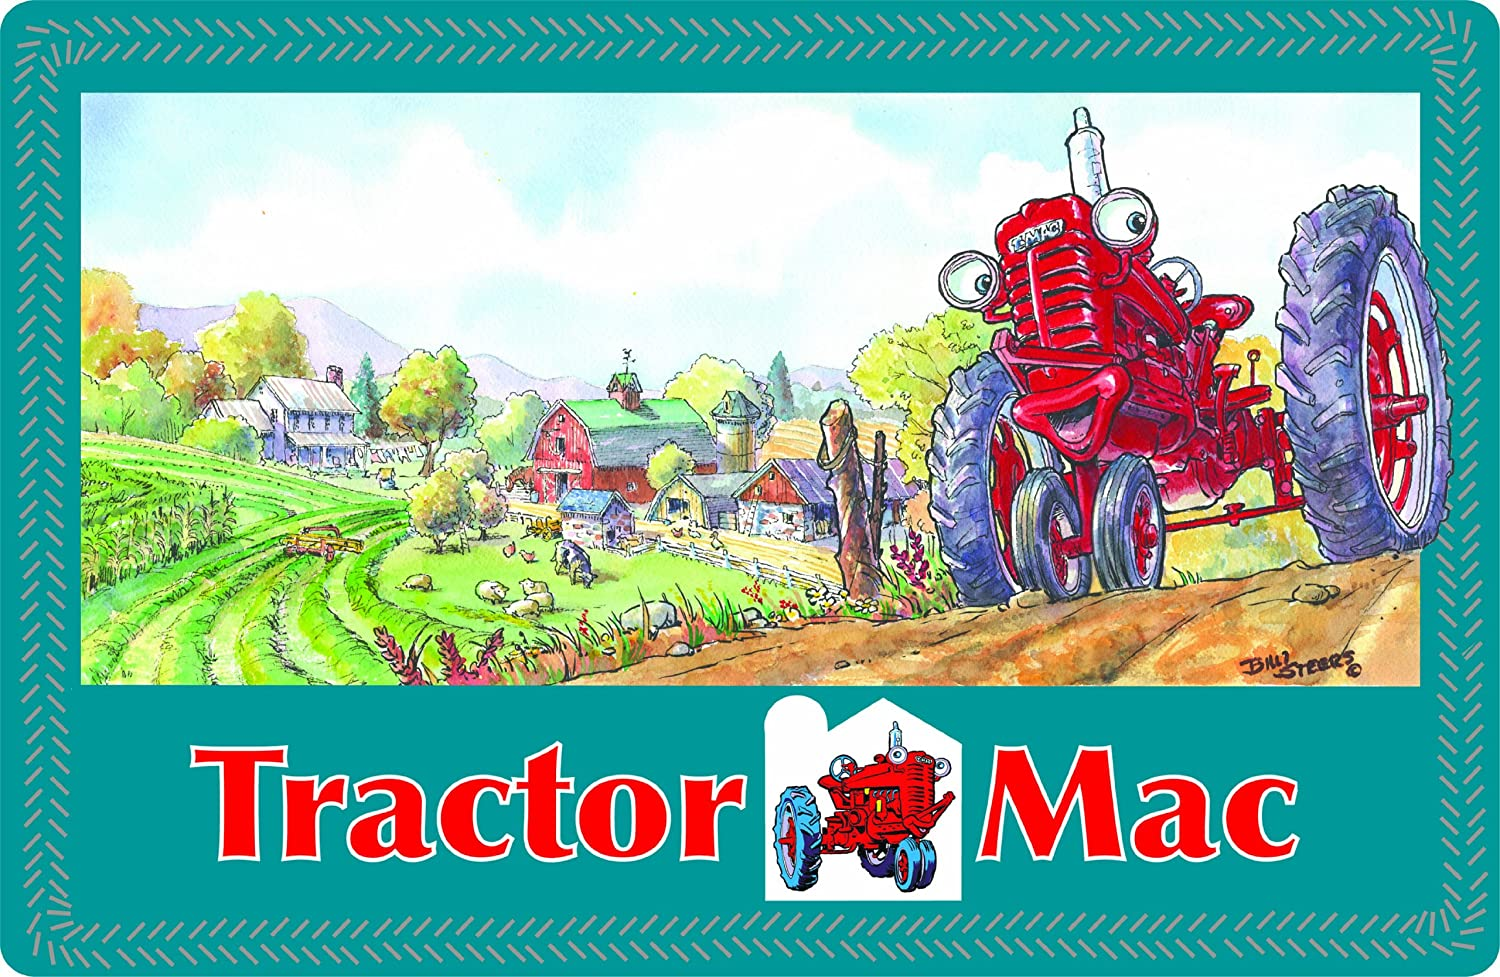 Motorhead Products Tractor Mac Childrens Placemat